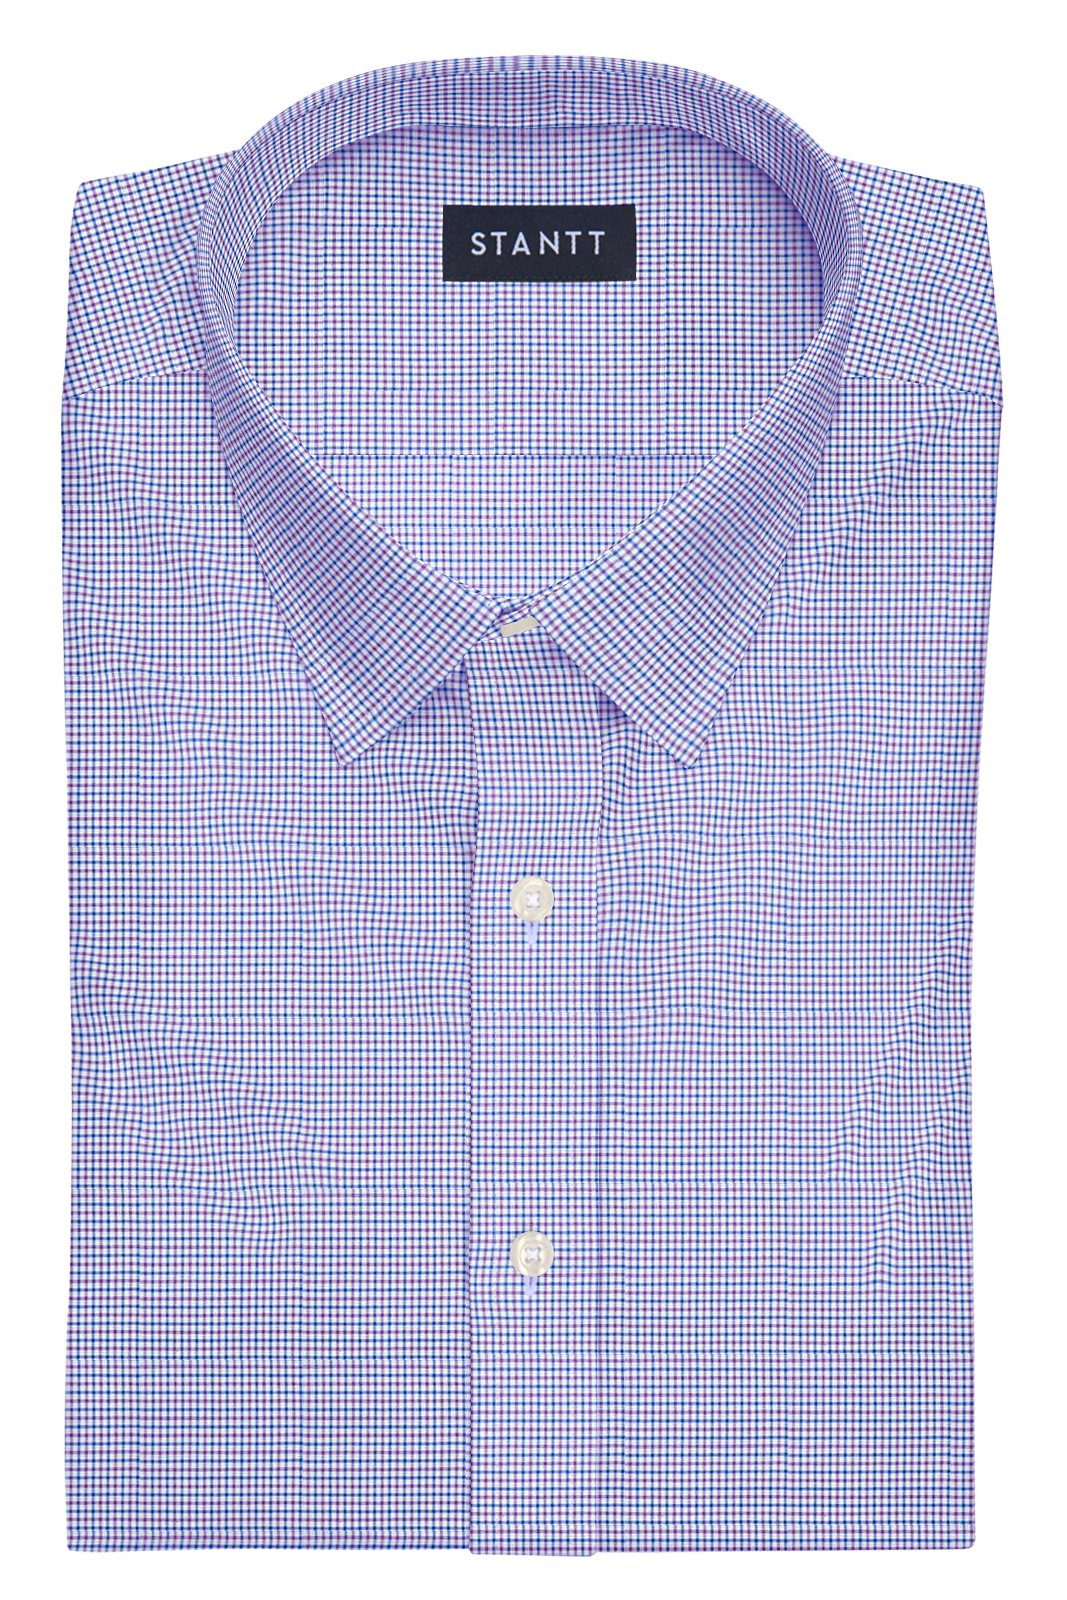 Purple and Blue Mini Tattersall: Semi-Spread Collar, French Cuff